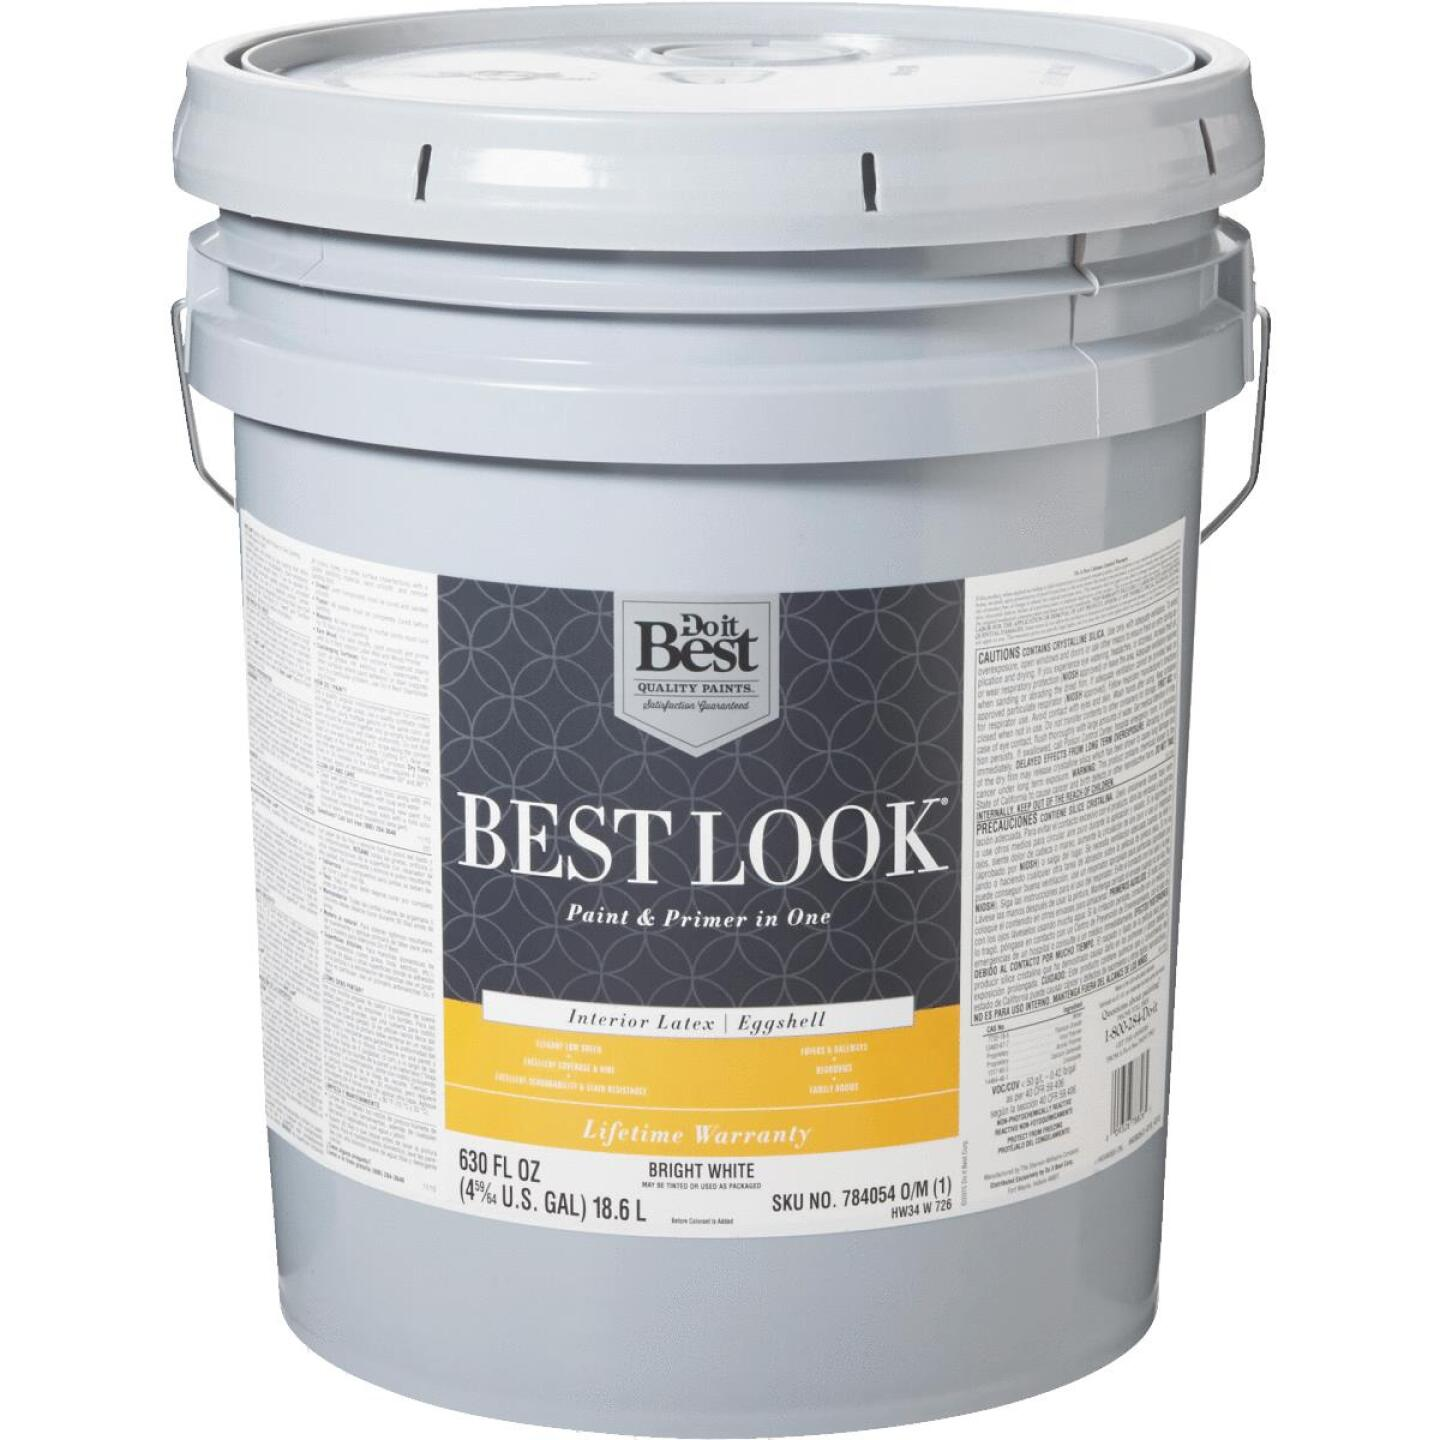 Best Look Latex Paint & Primer In One Eggshell Interior Wall Paint, Bright White, 5 Gal. Image 1